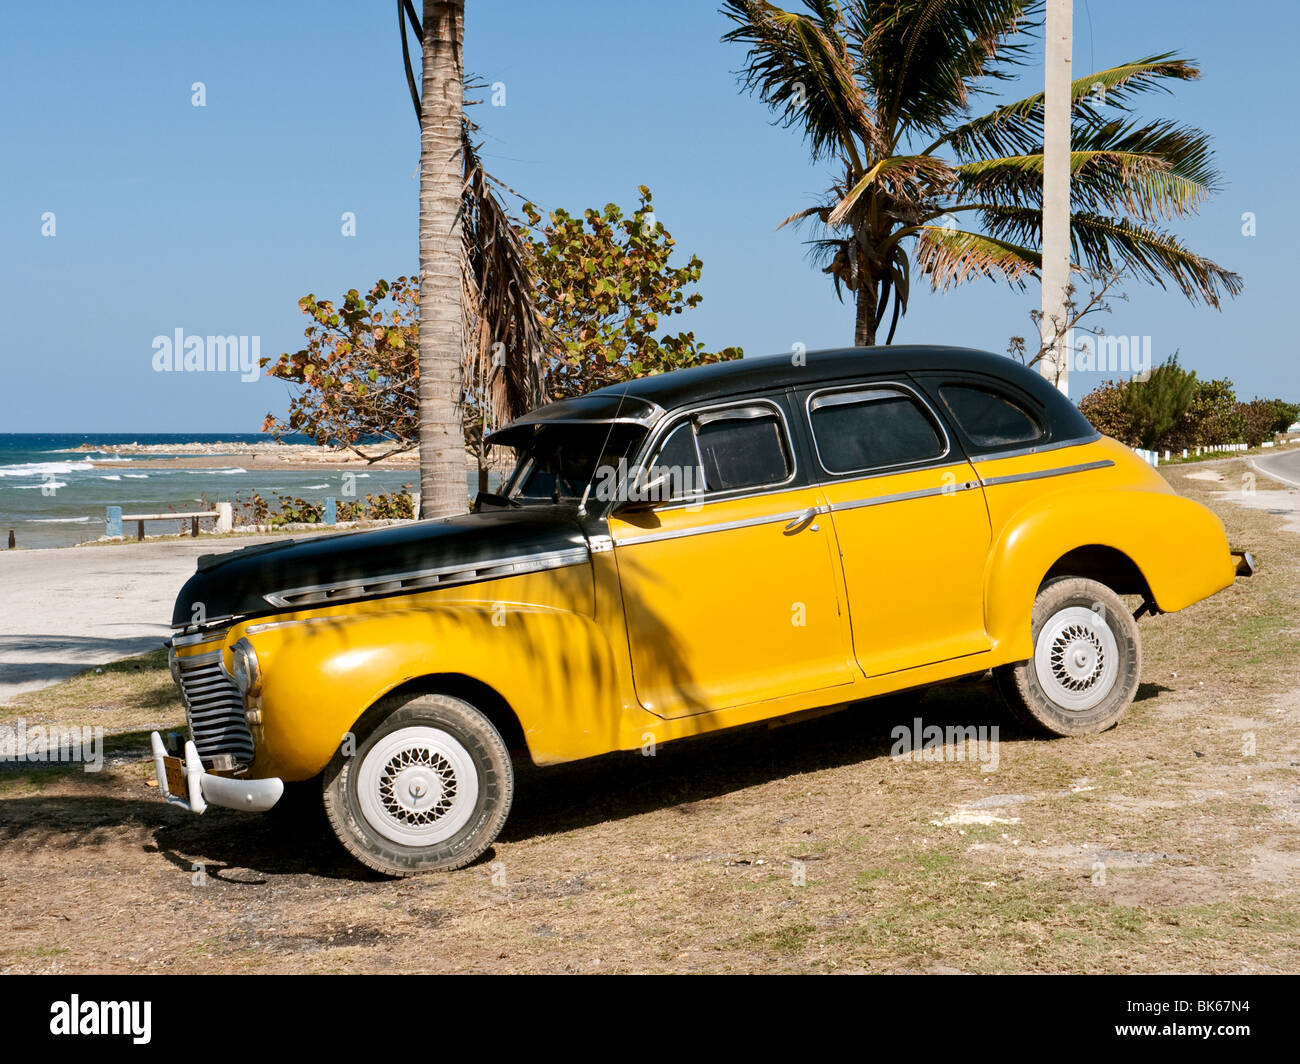 1950s American Car By The Beach Near Havana Cuba